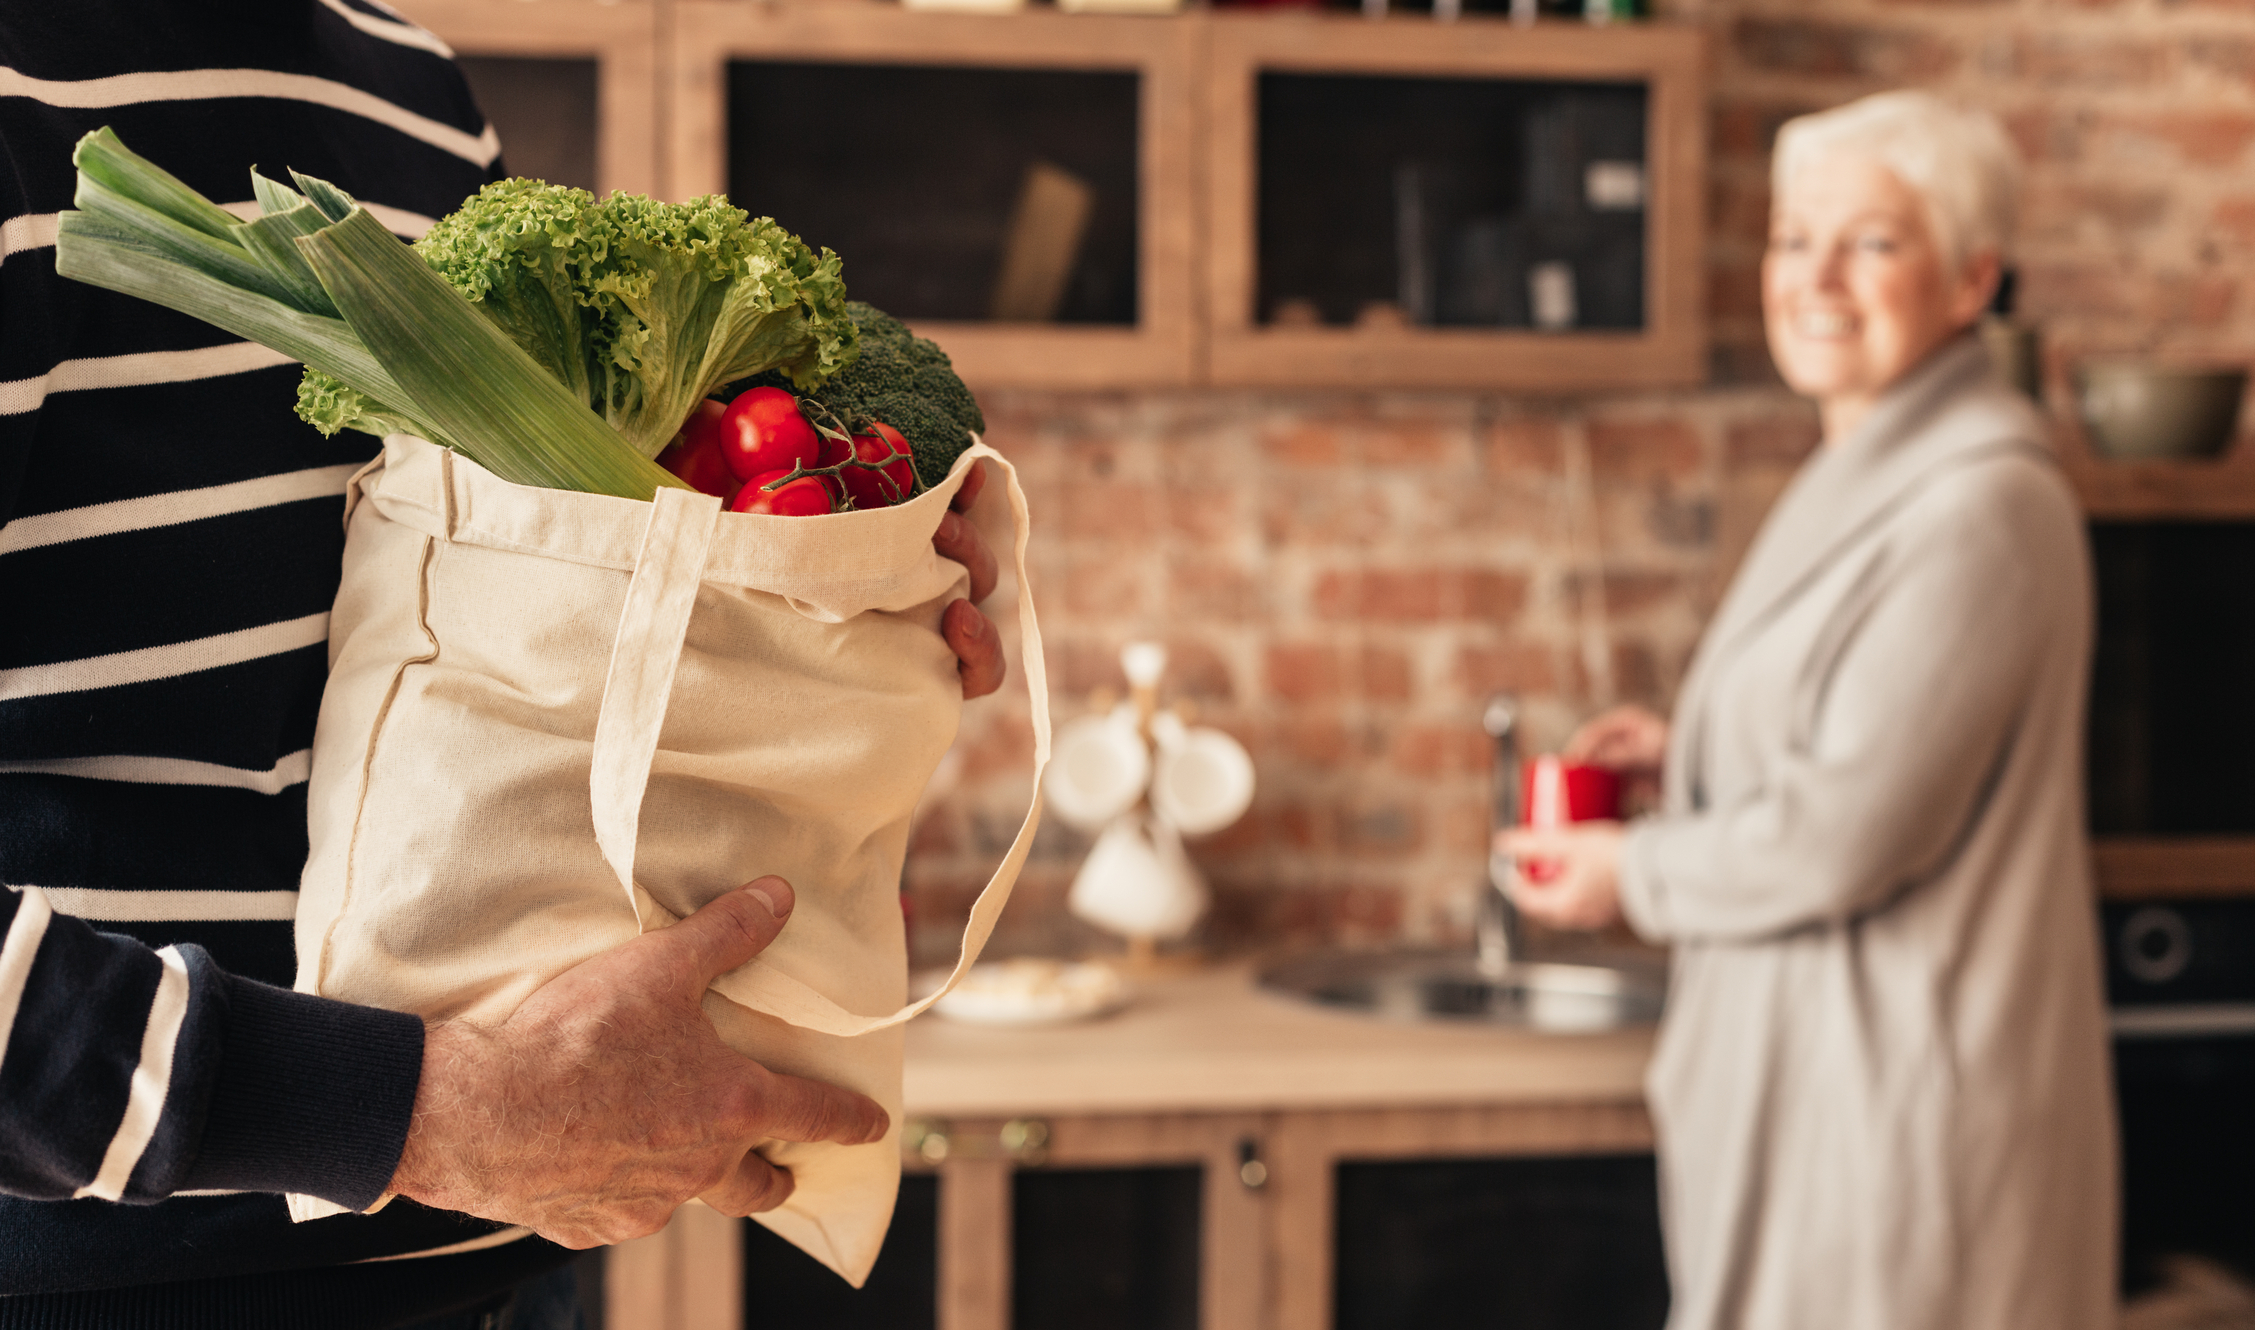 The foods you eat, the way you prepare them, the bags you use to carry them home from the store, and the way you clean up in the kitchen affect the environment in many ways.